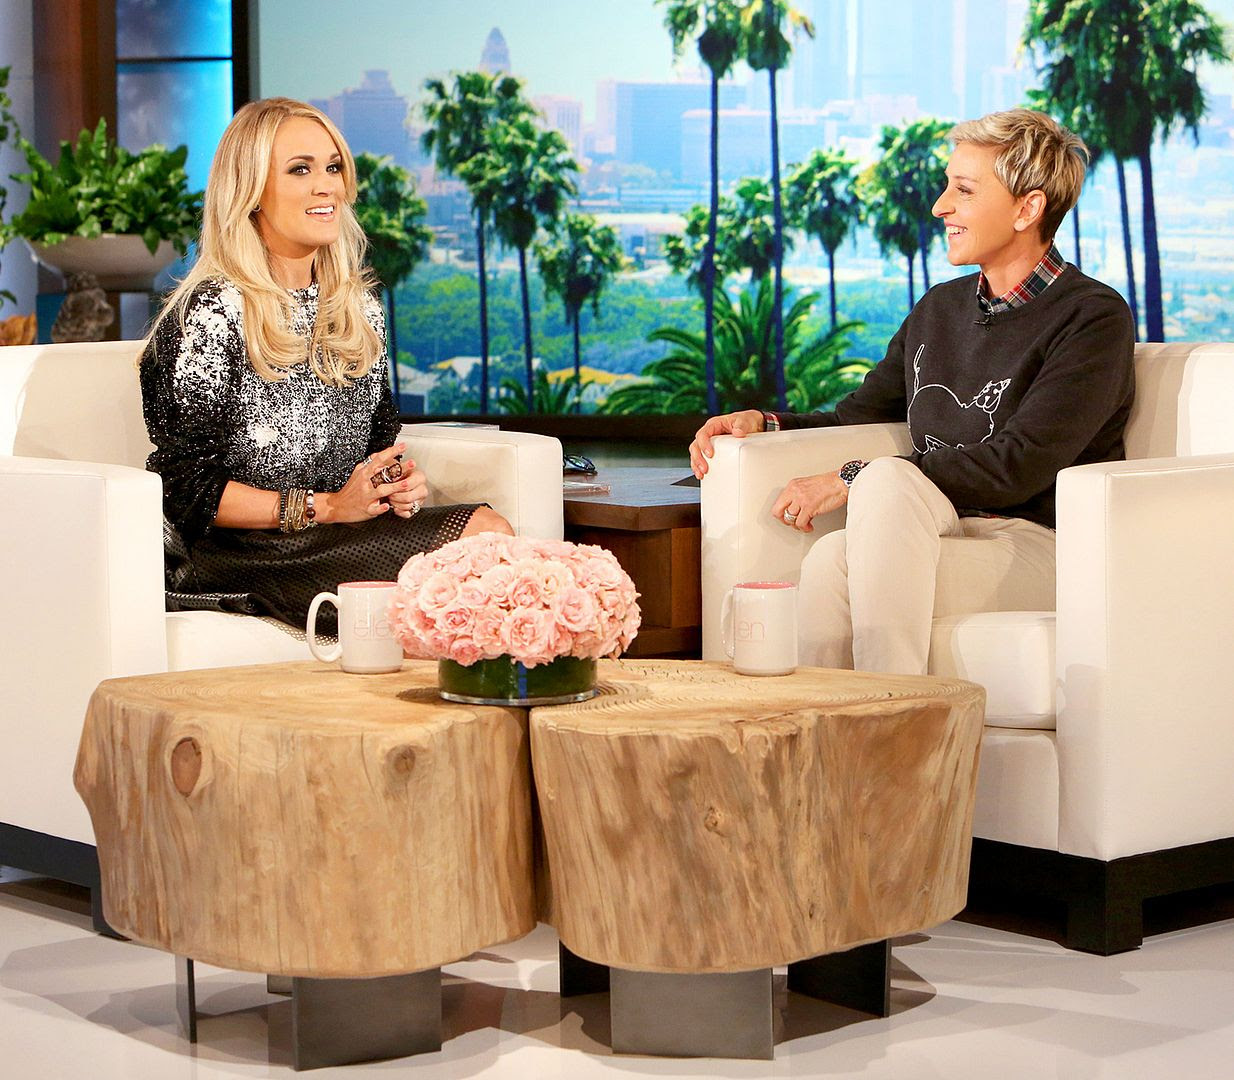 Carrie Underwood : Ellen (October 2015) photo 1445956337_carrie-underwood-ellen-degeneres-zoom.jpg